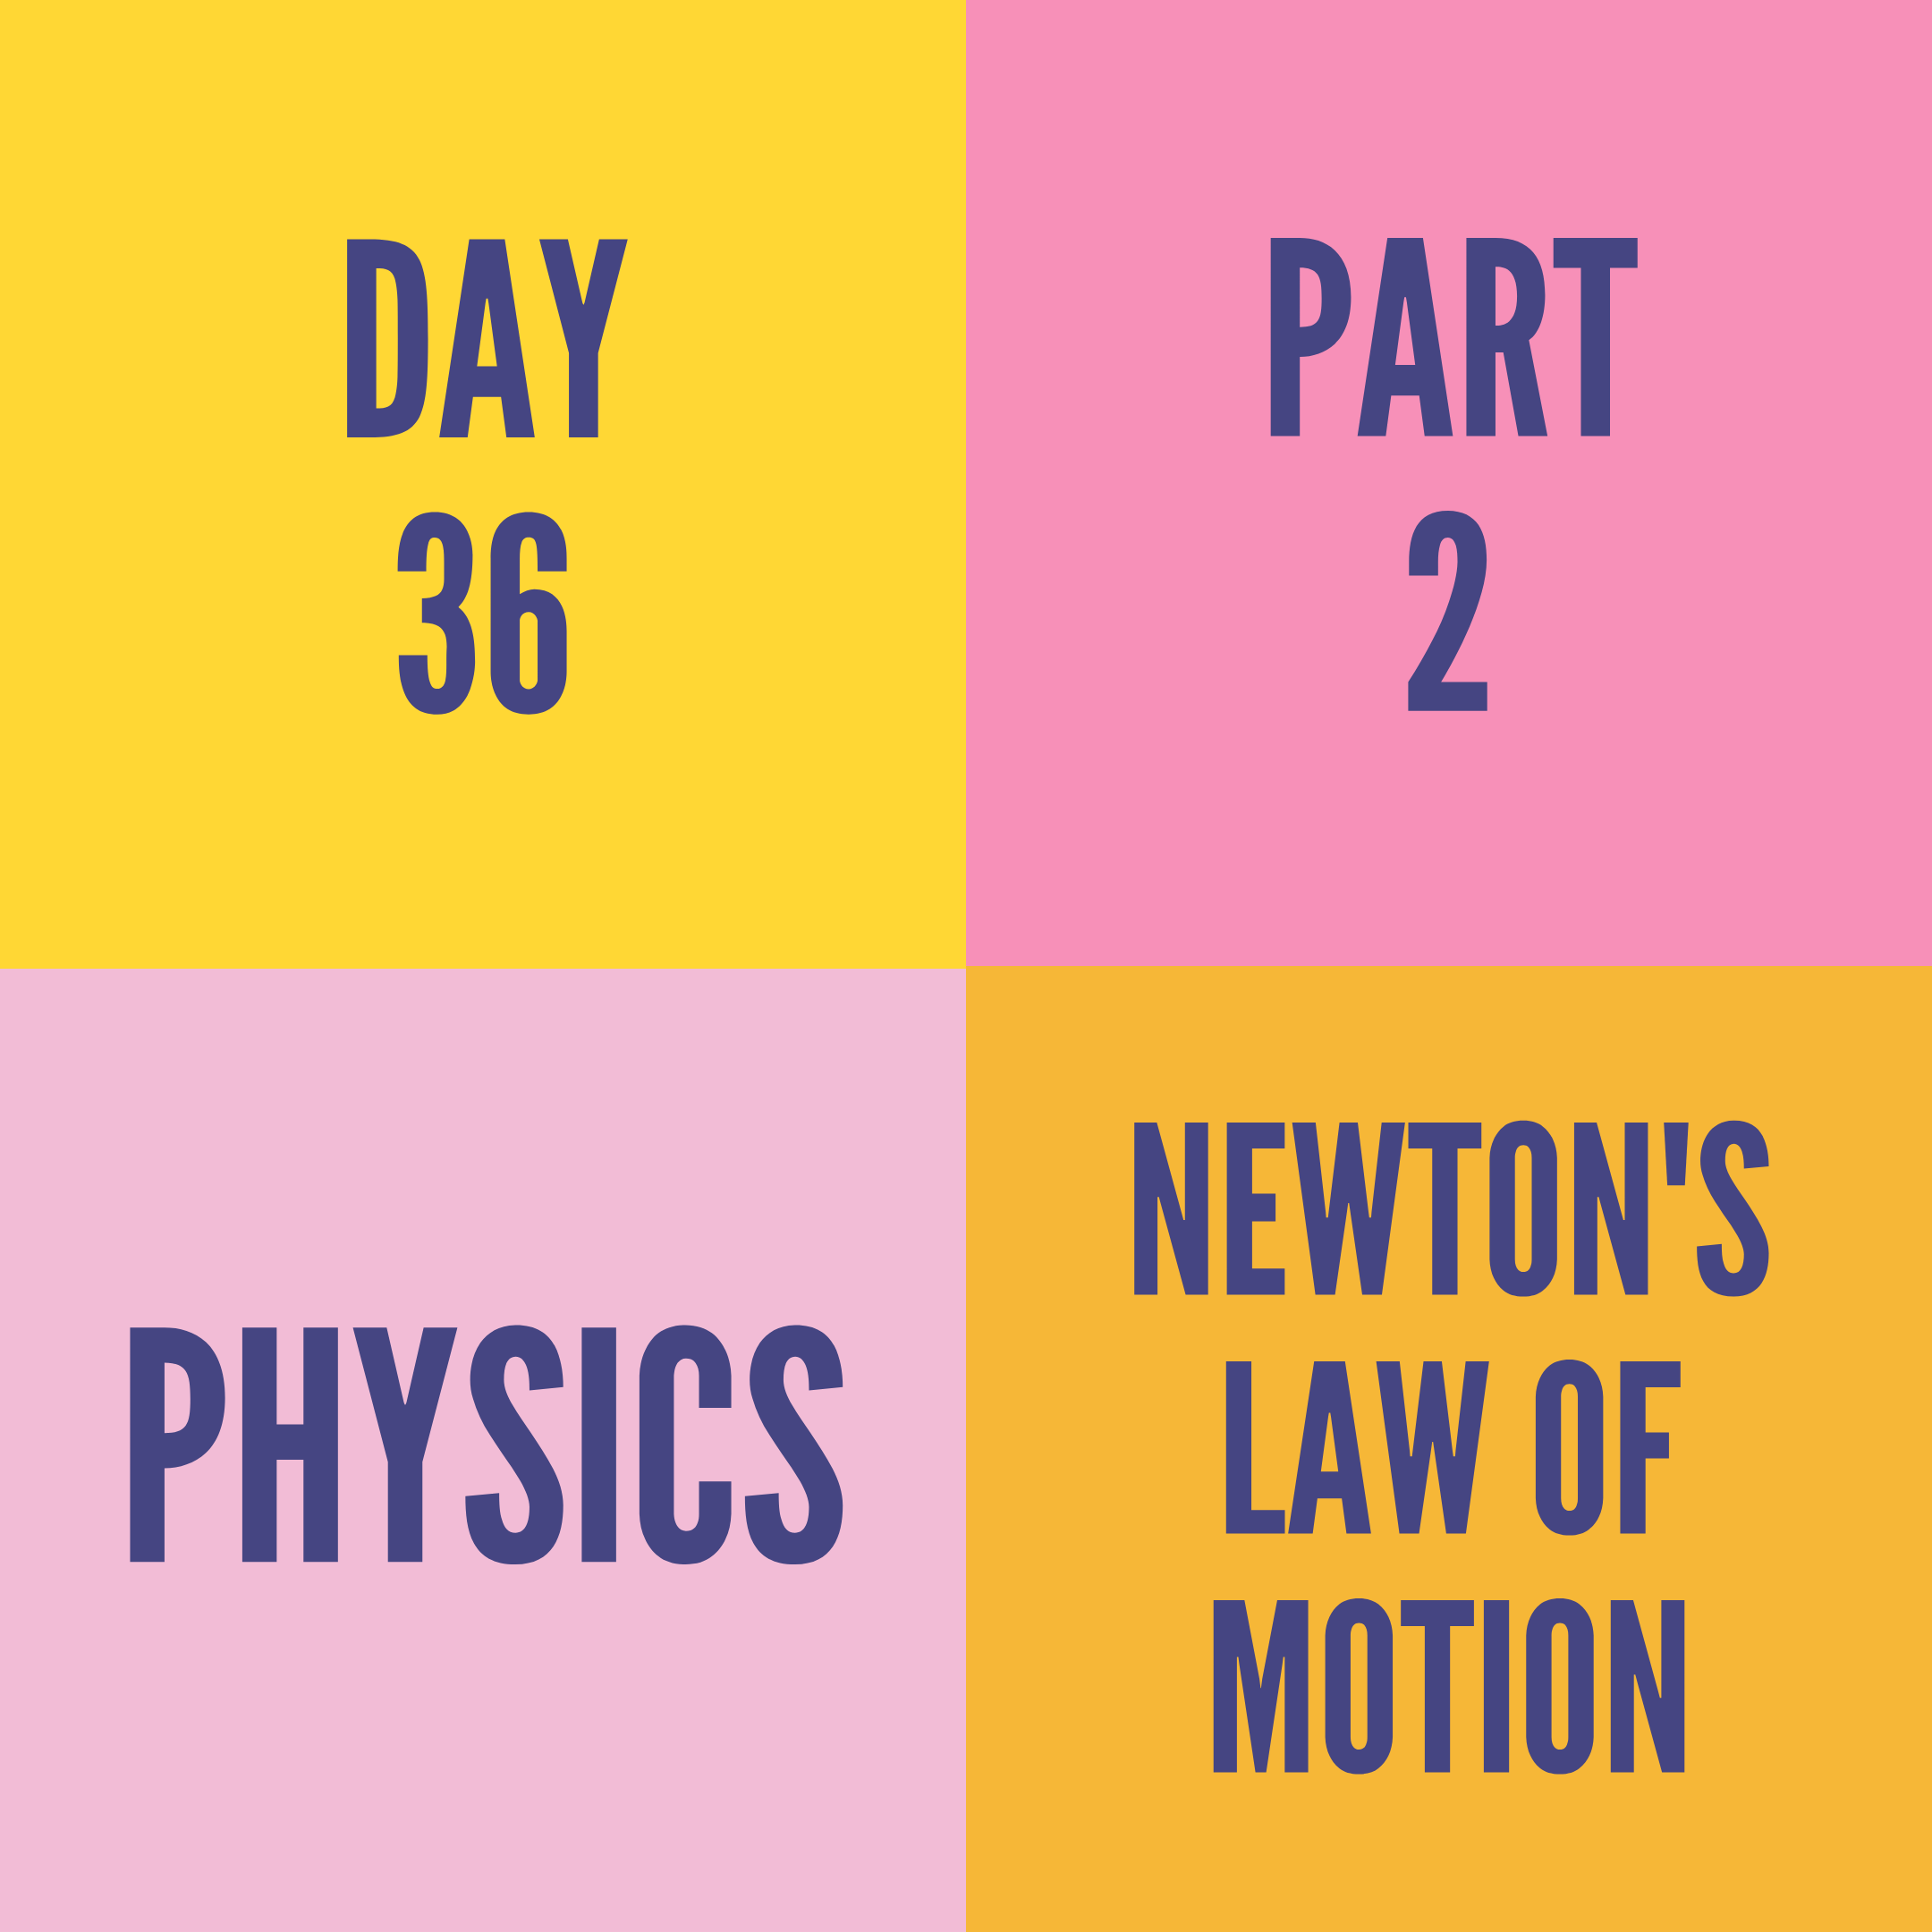 DAY-36 PART-2 NEWTON'S LAW OF MOTION